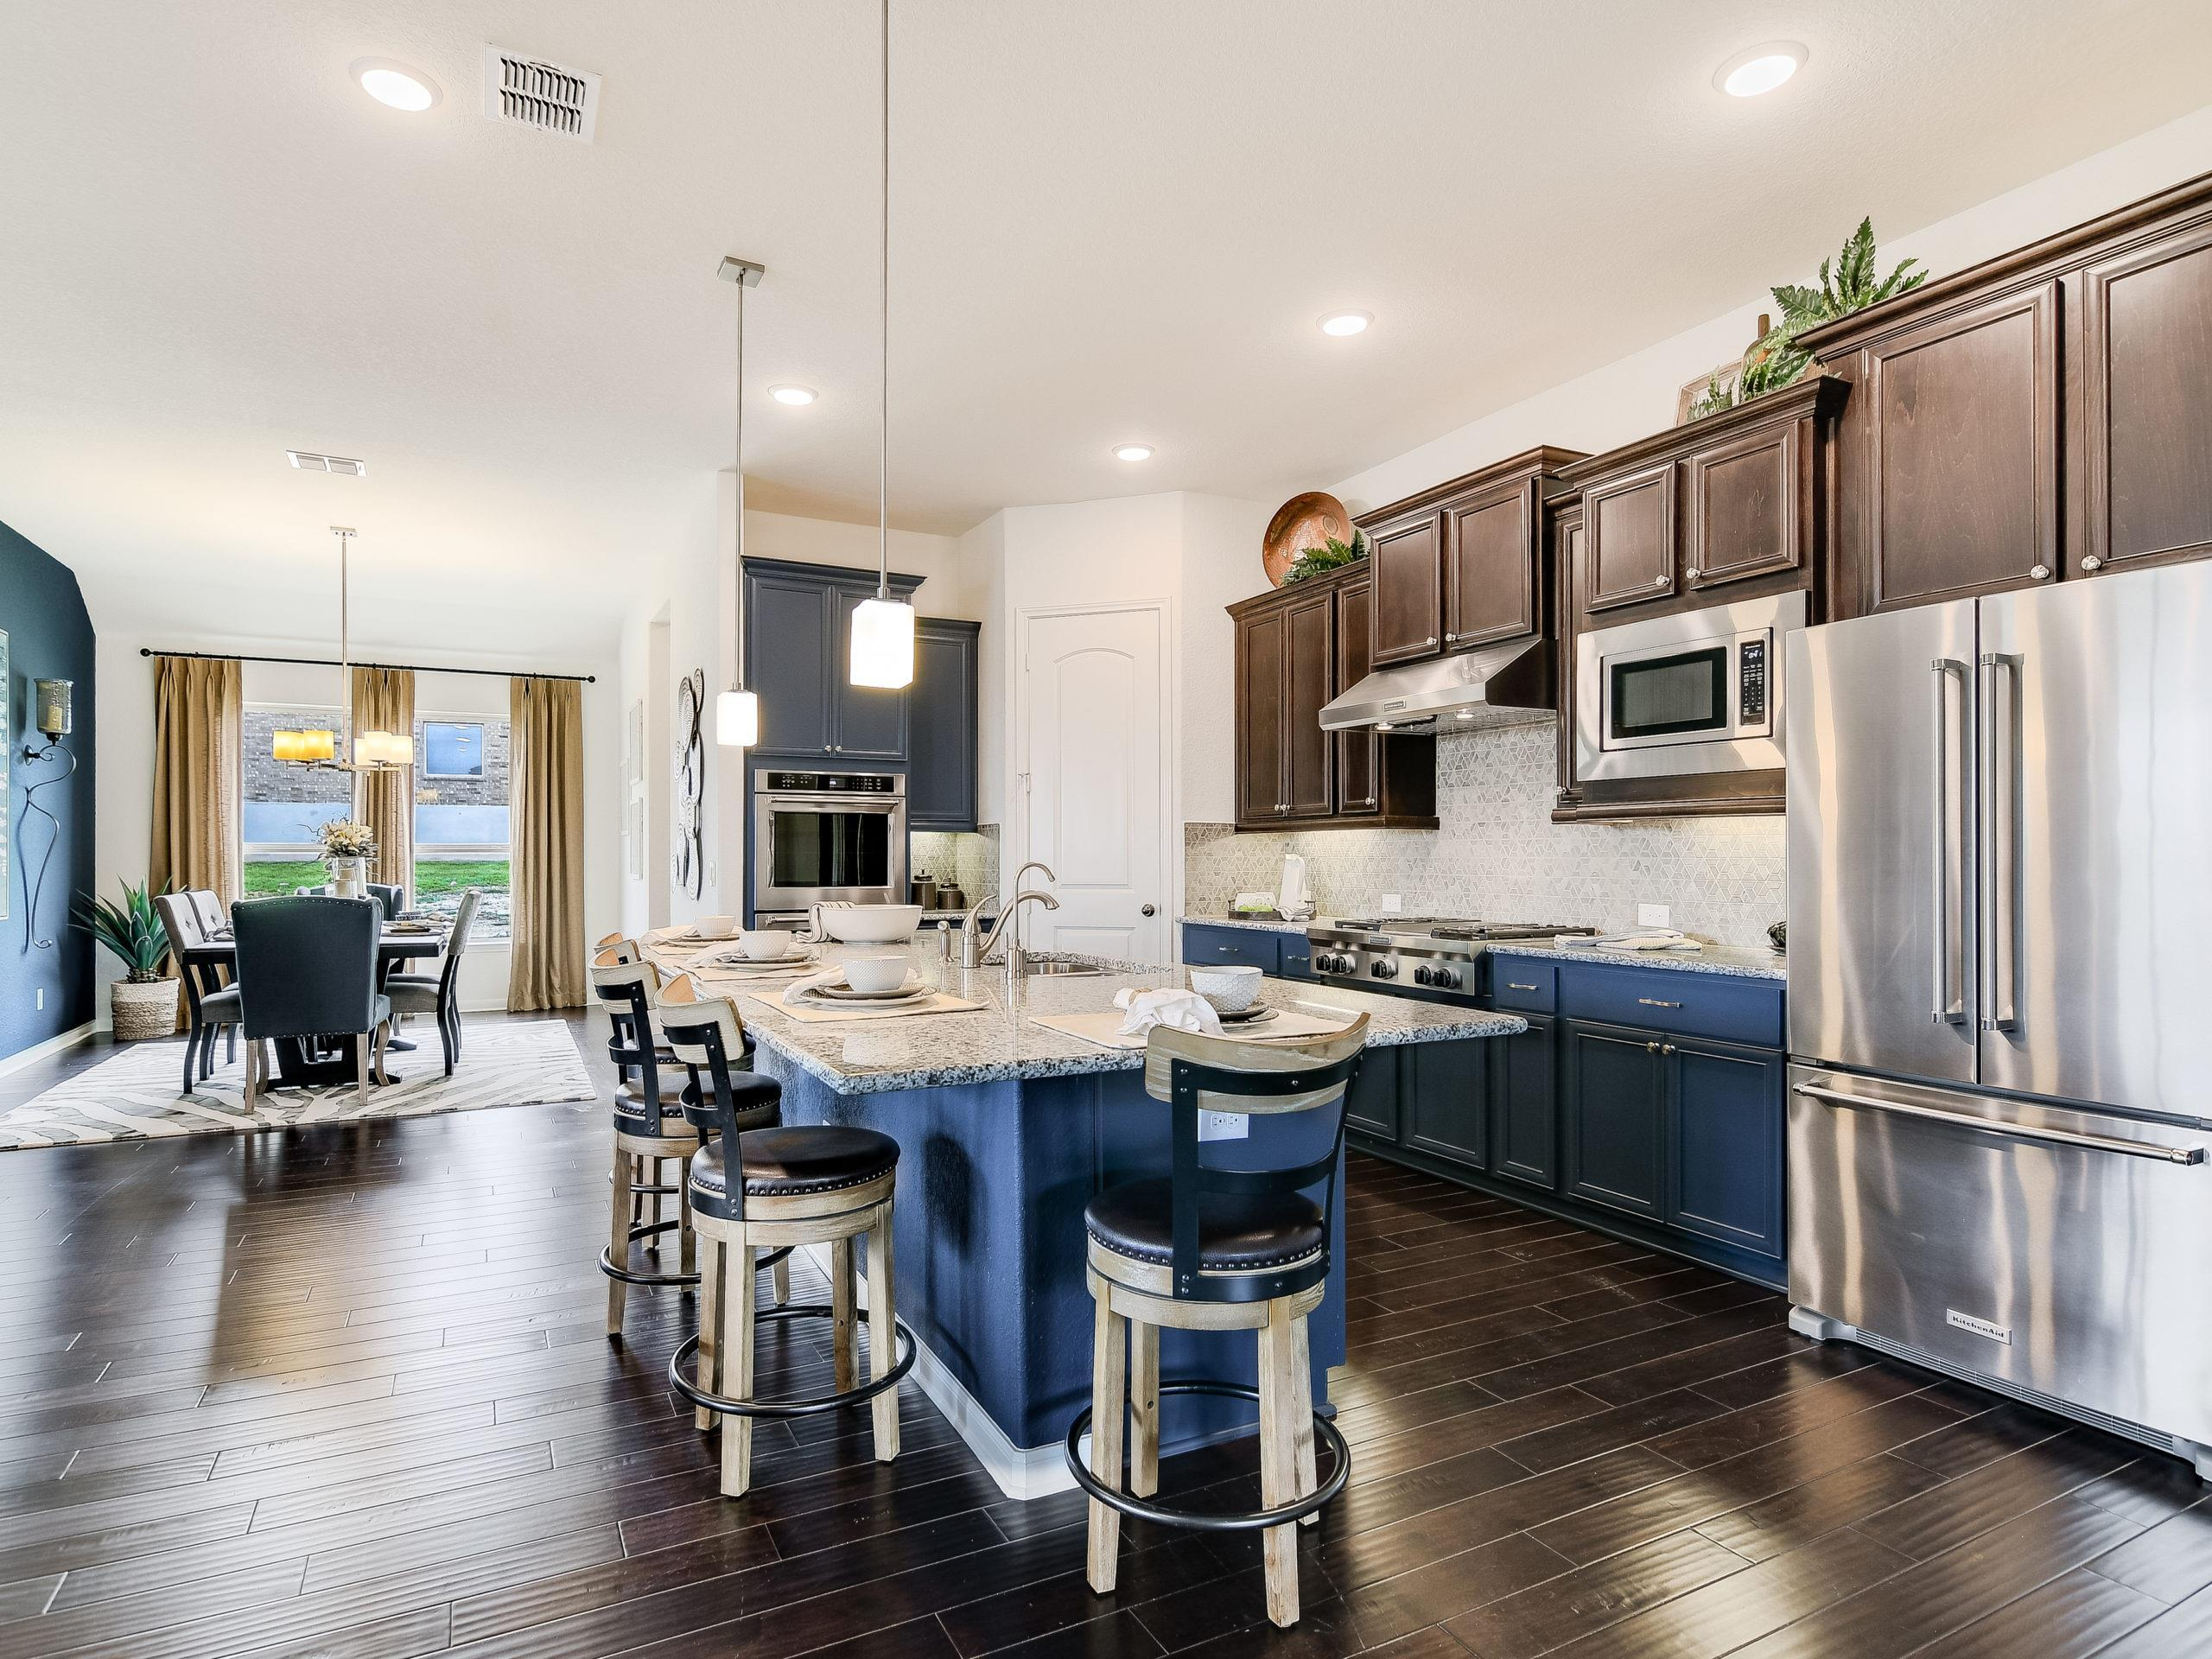 Kitchen featured in the Westwood By Sitterle Homes in San Antonio, TX